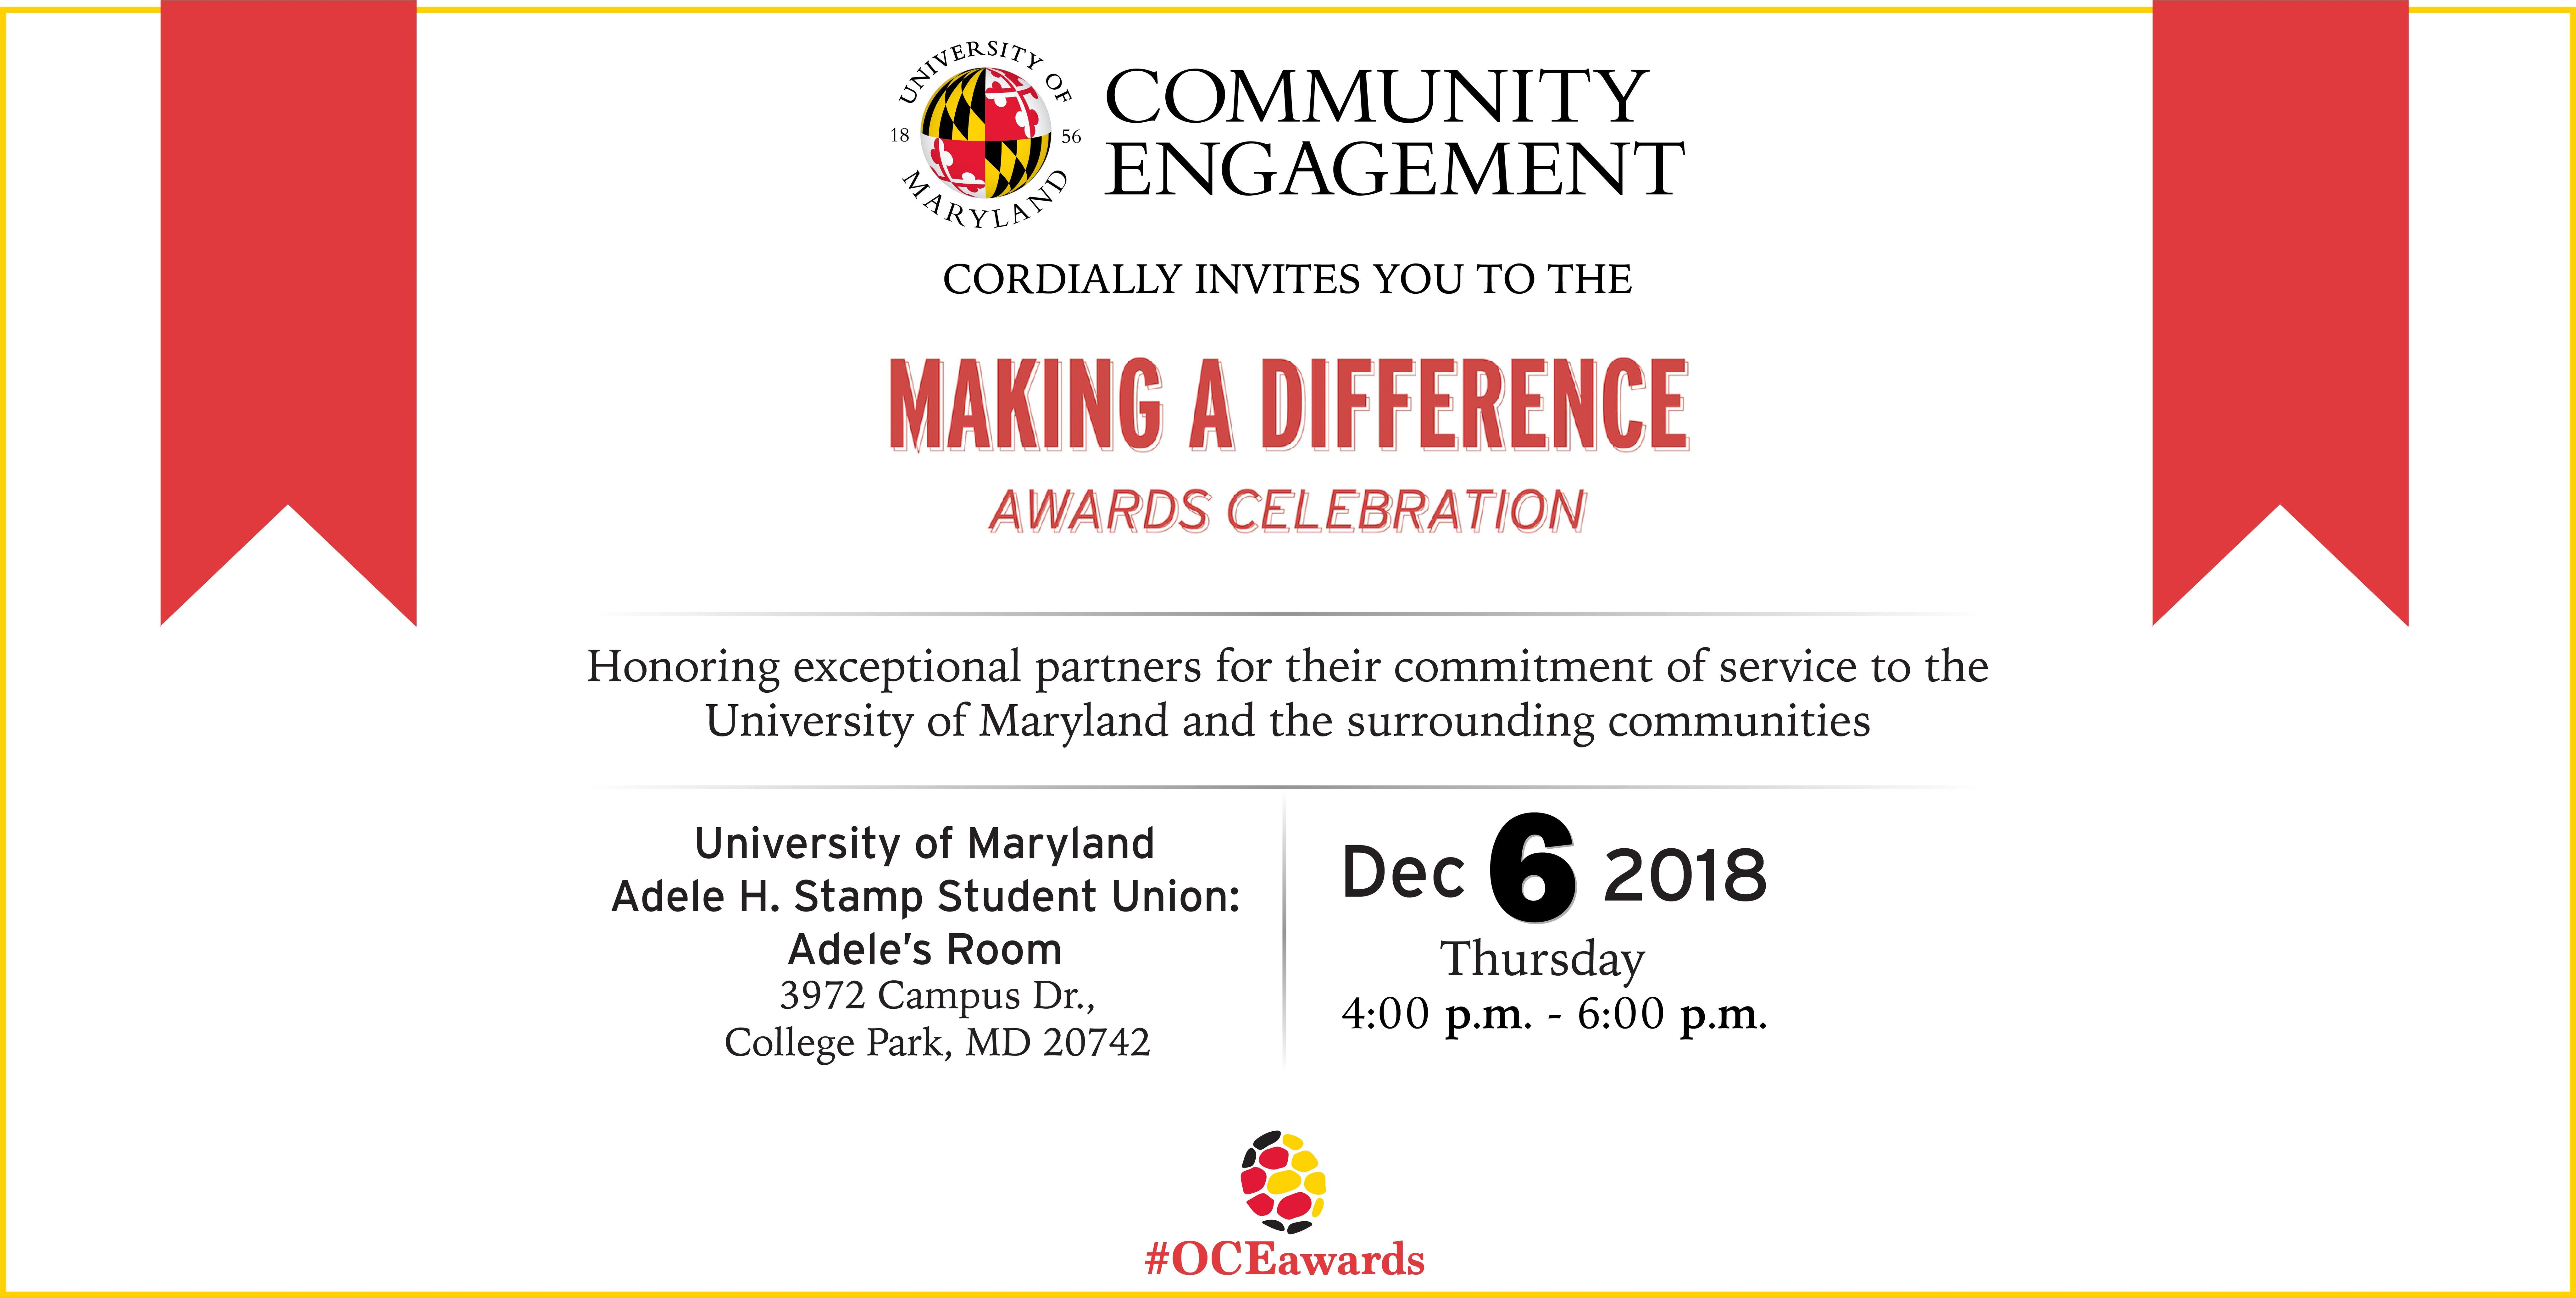 2018 Making A Difference Awards Celebration